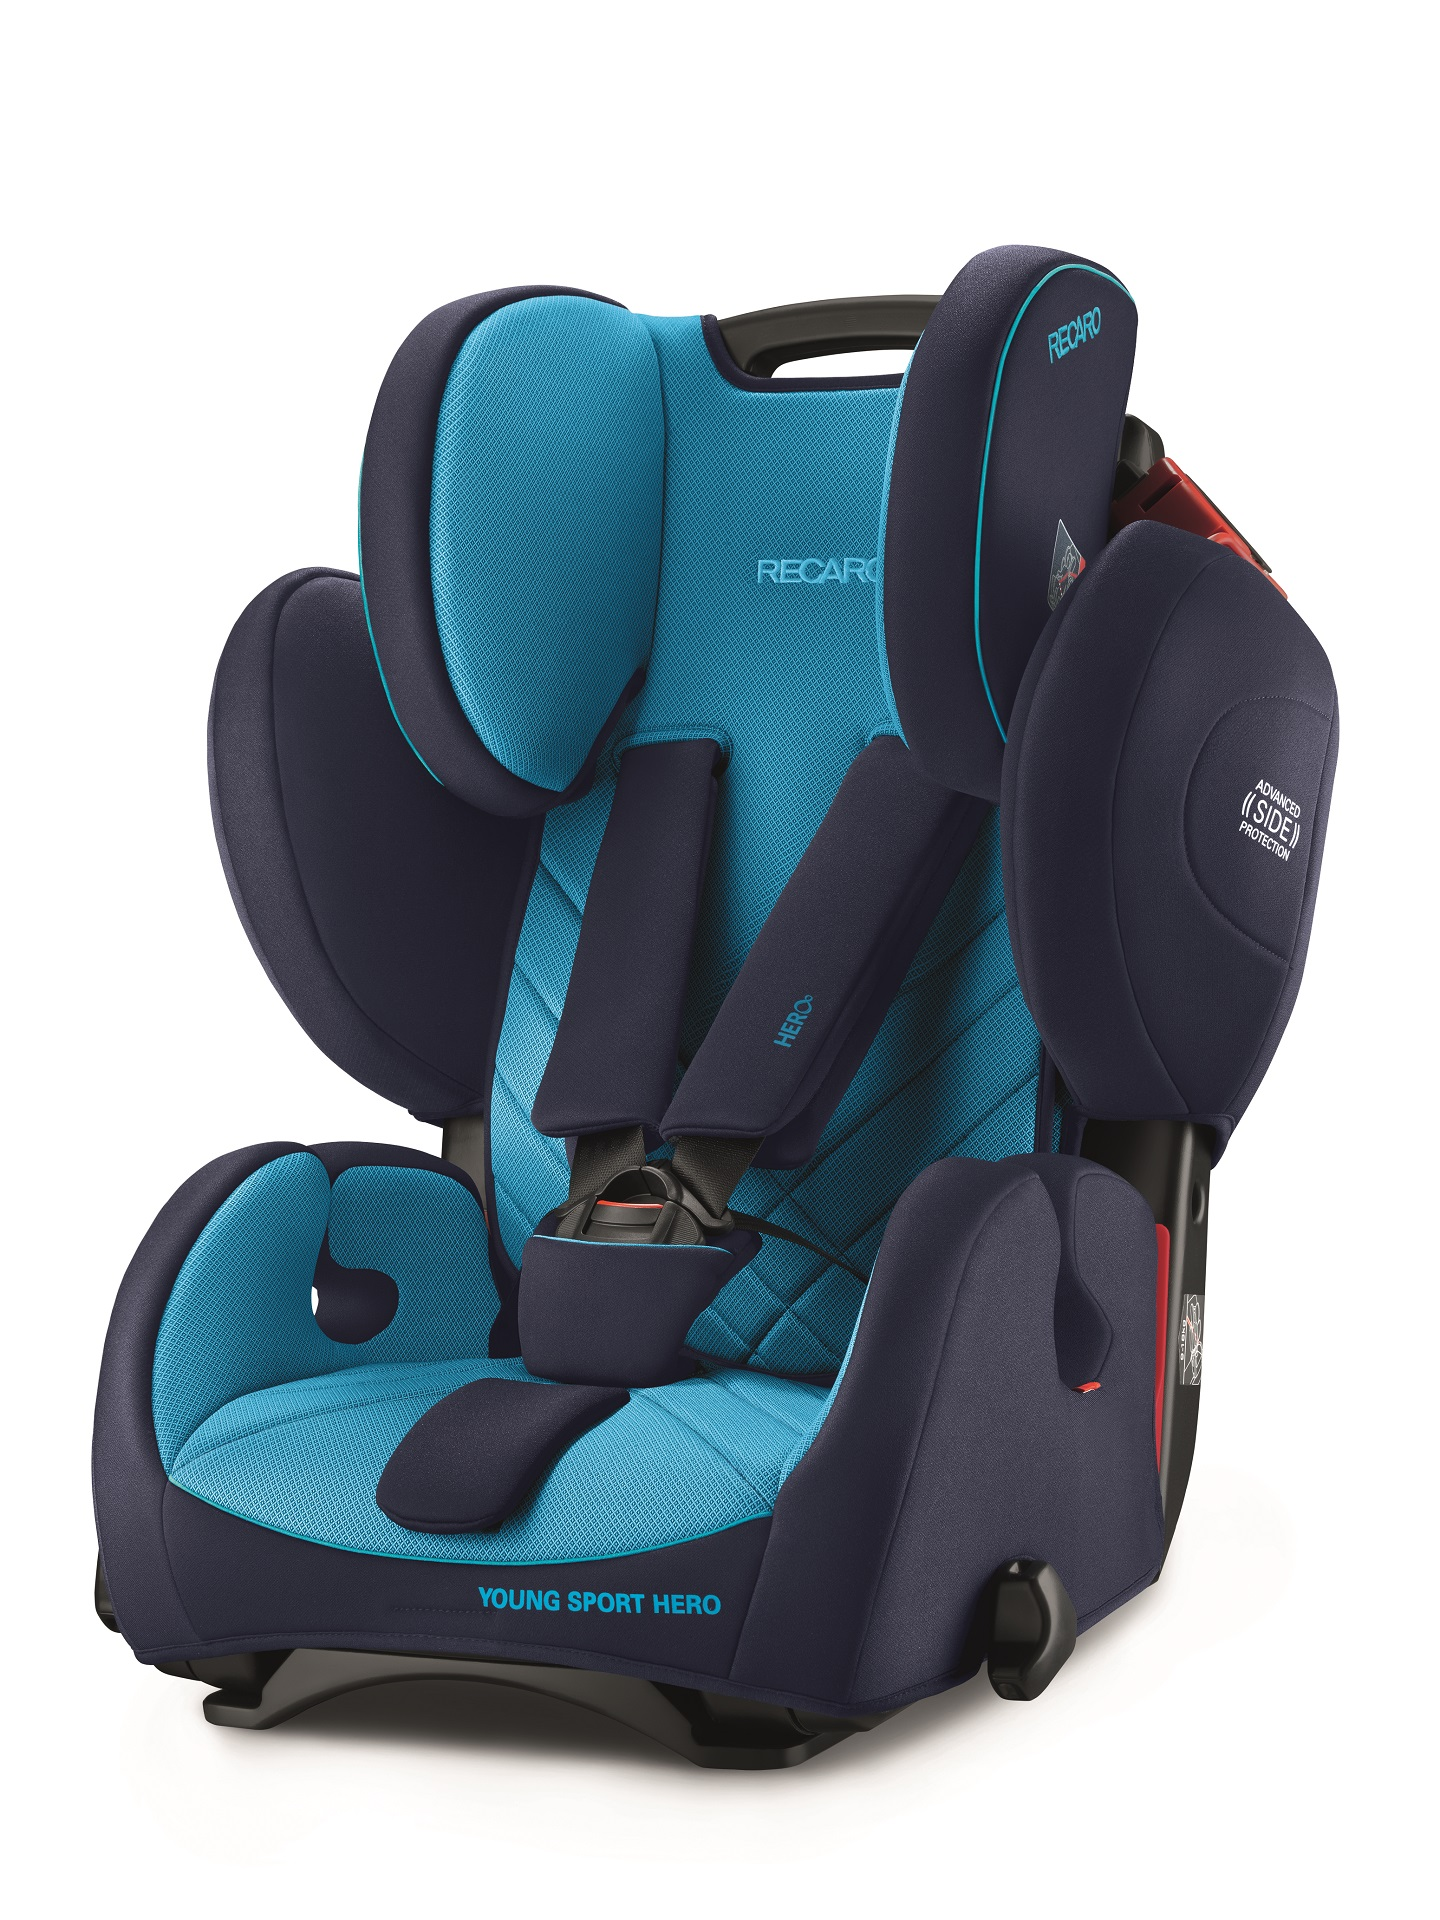 recaro child car seat young sport hero 2018 indy red buy at kidsroom car seats. Black Bedroom Furniture Sets. Home Design Ideas